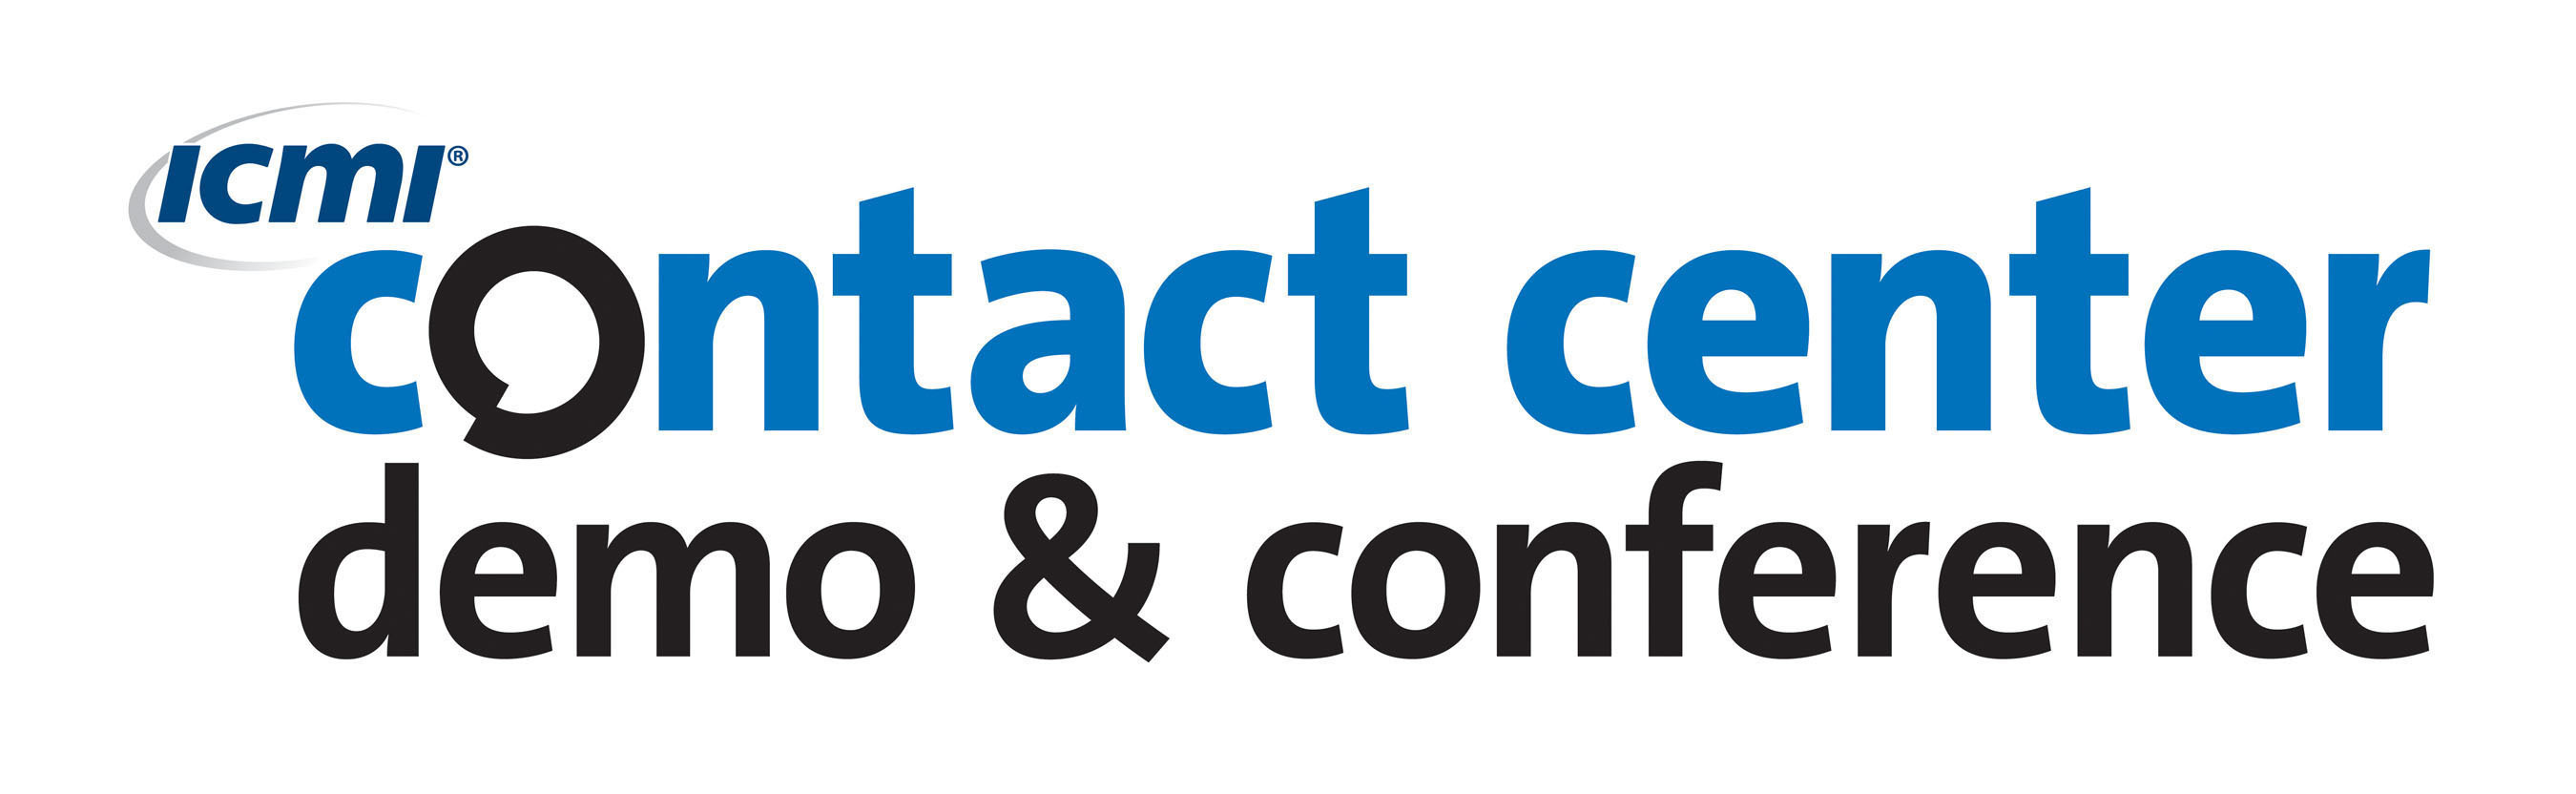 ICMI's 2016 Contact Center Demo & Conference to House New Products, Services and Demonstrations from Leading Exhibitors